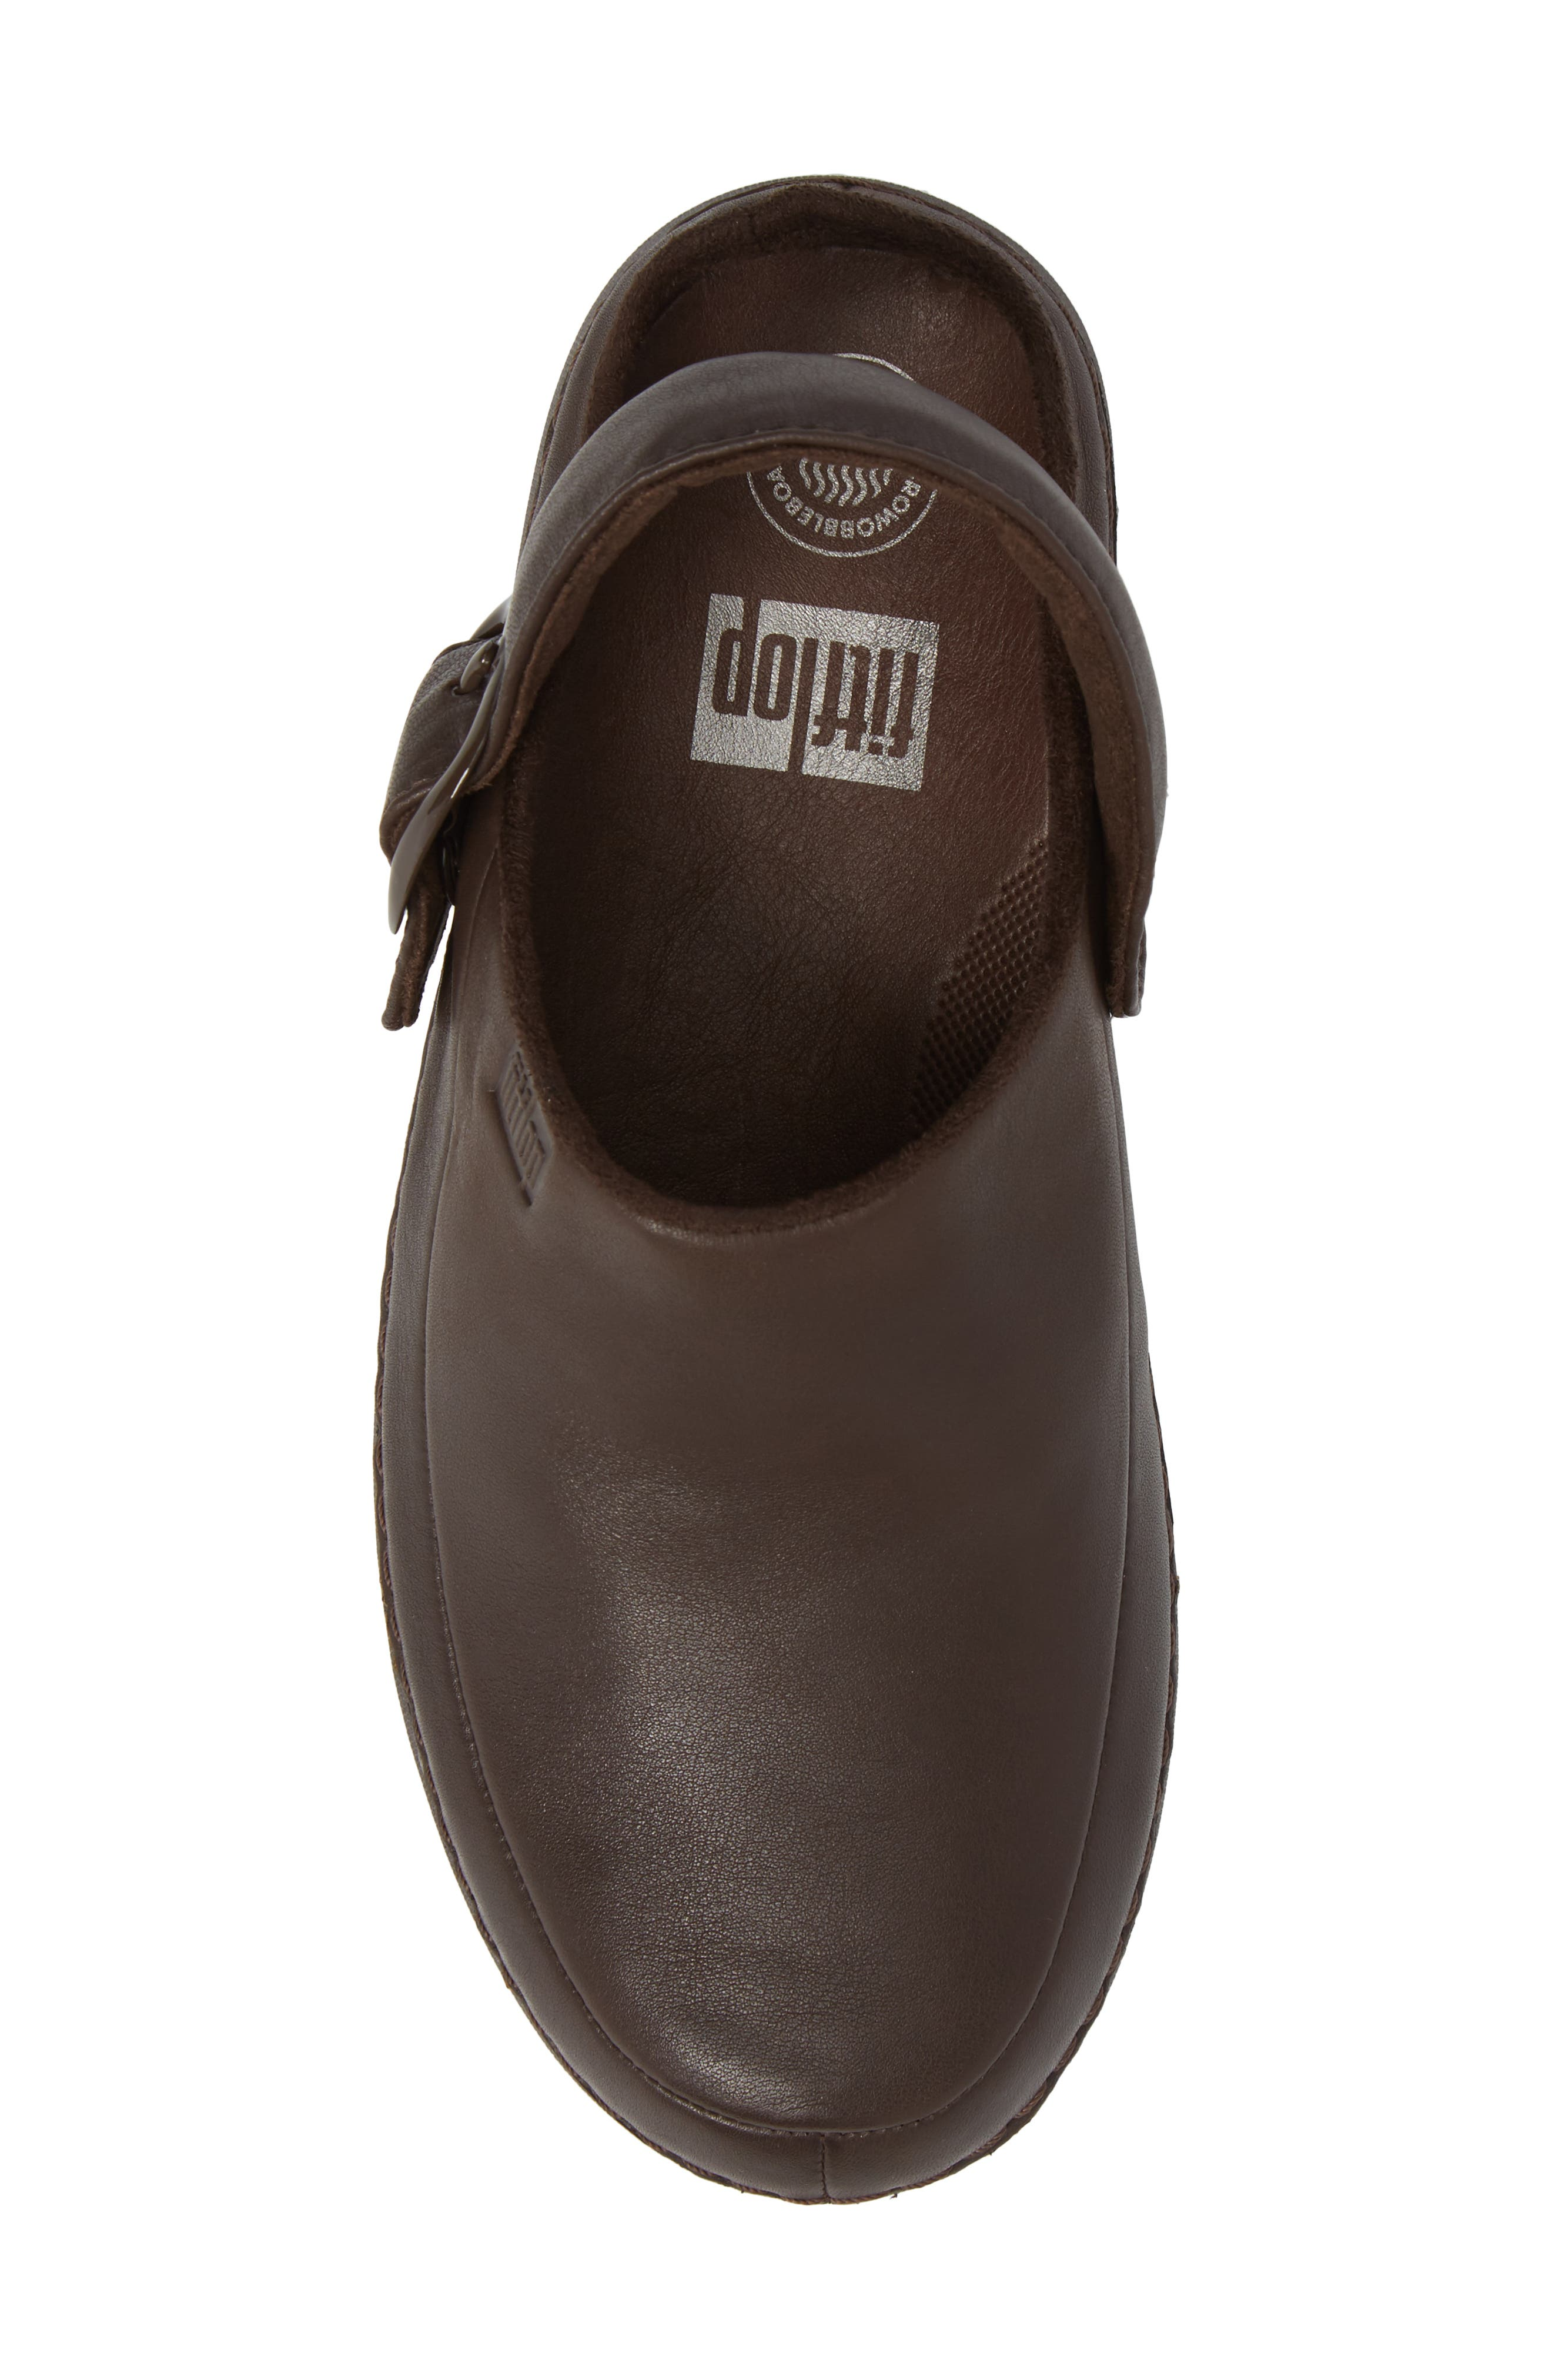 Gogh Pro - Superlight Clog,                             Alternate thumbnail 5, color,                             Chocolate Brown Leather